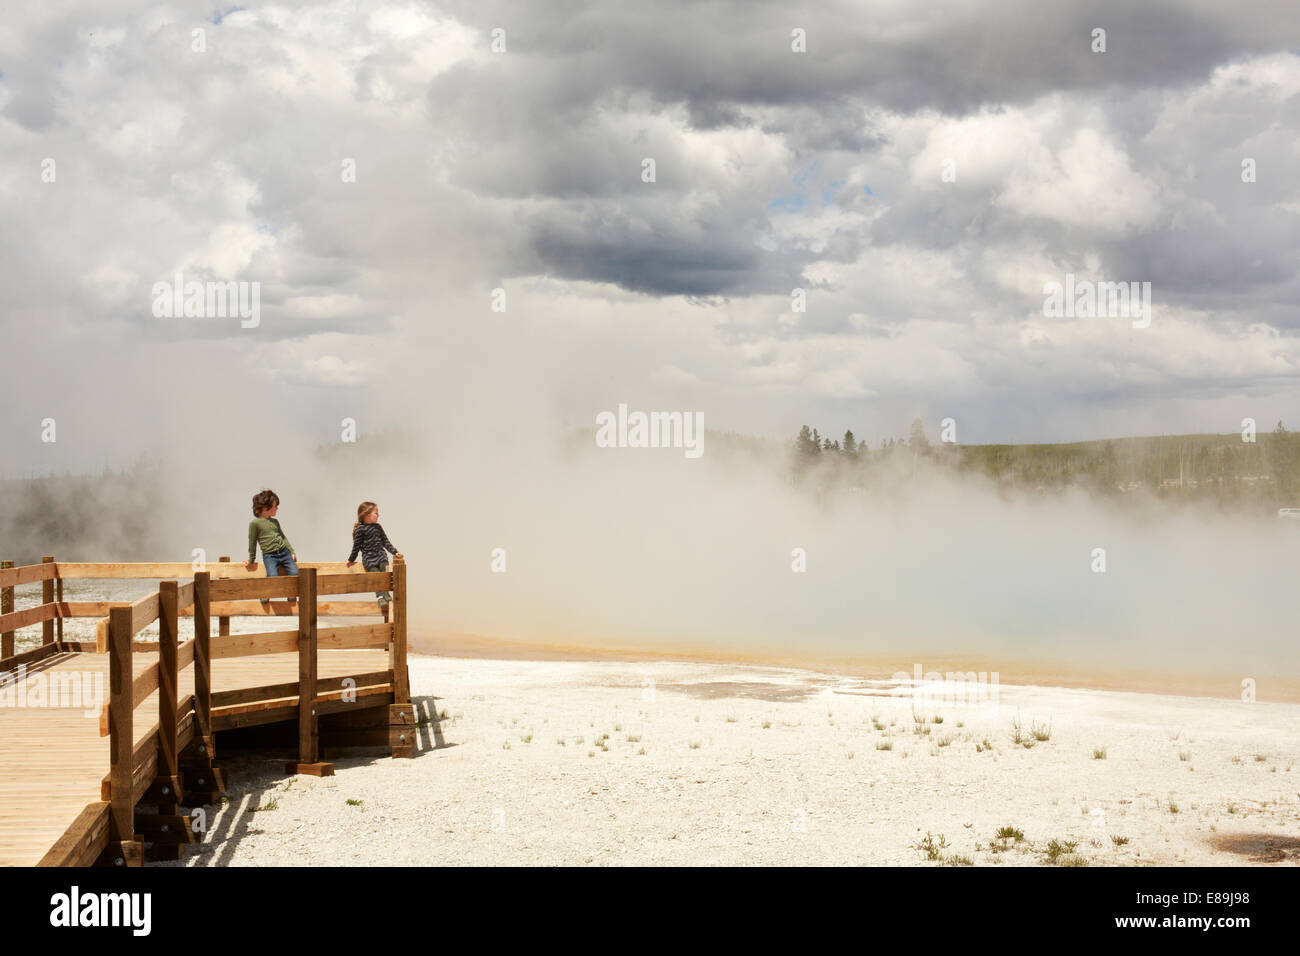 Les enfants regardant les geysers de Yellowstone Photo Stock